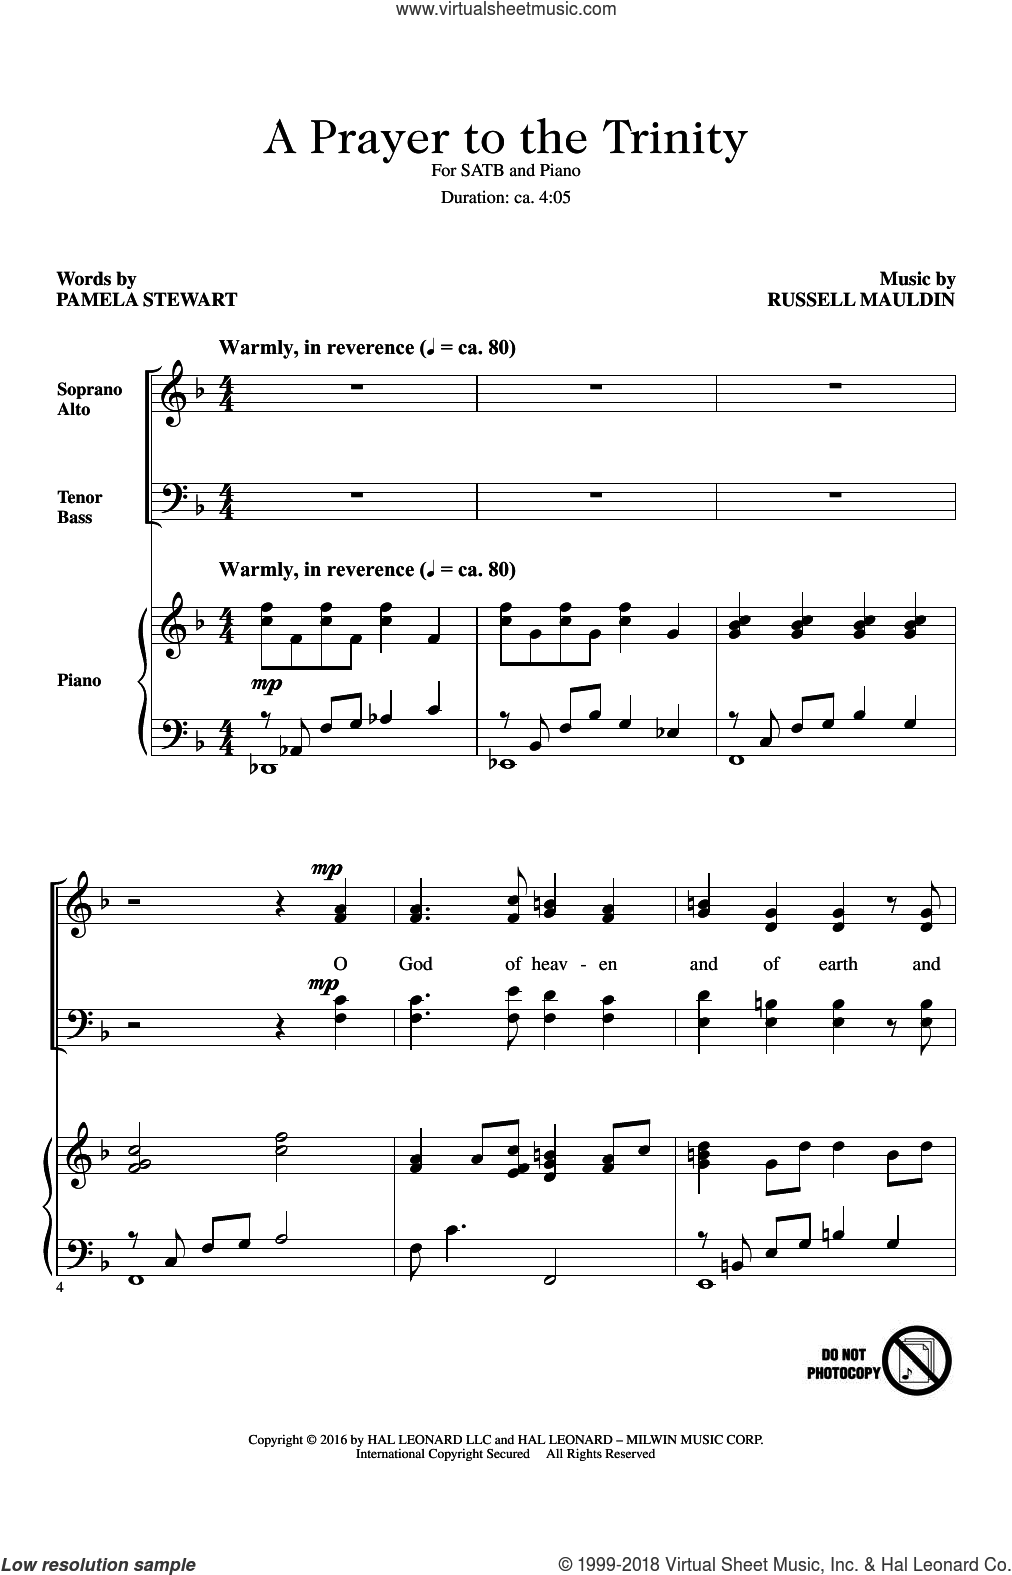 A Prayer To The Trinity sheet music for choir (SATB: soprano, alto, tenor, bass) by Russell Mauldin and Pamela Stewart, intermediate skill level